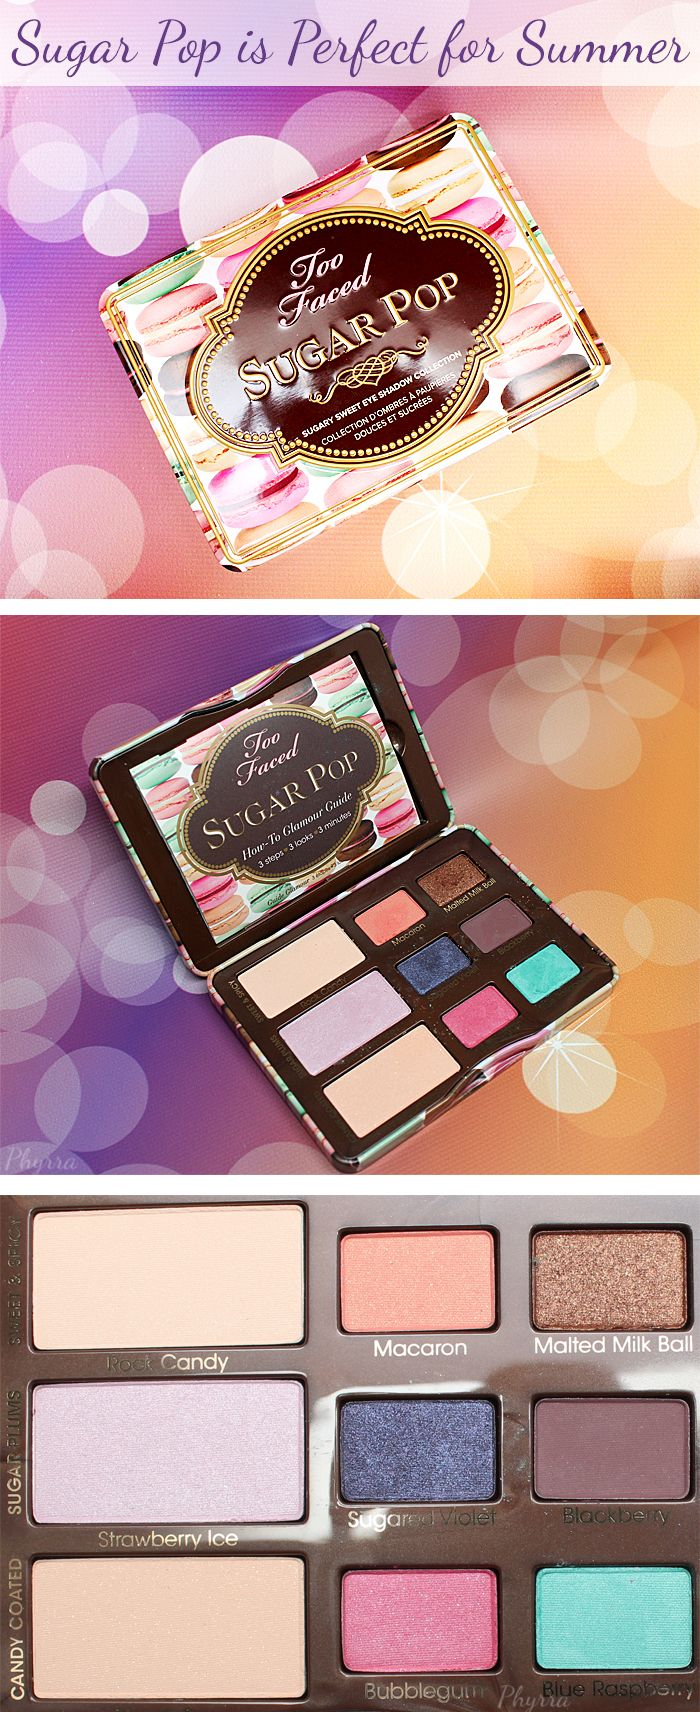 Too Faced Sugar Pop Palette Review. So pretty!